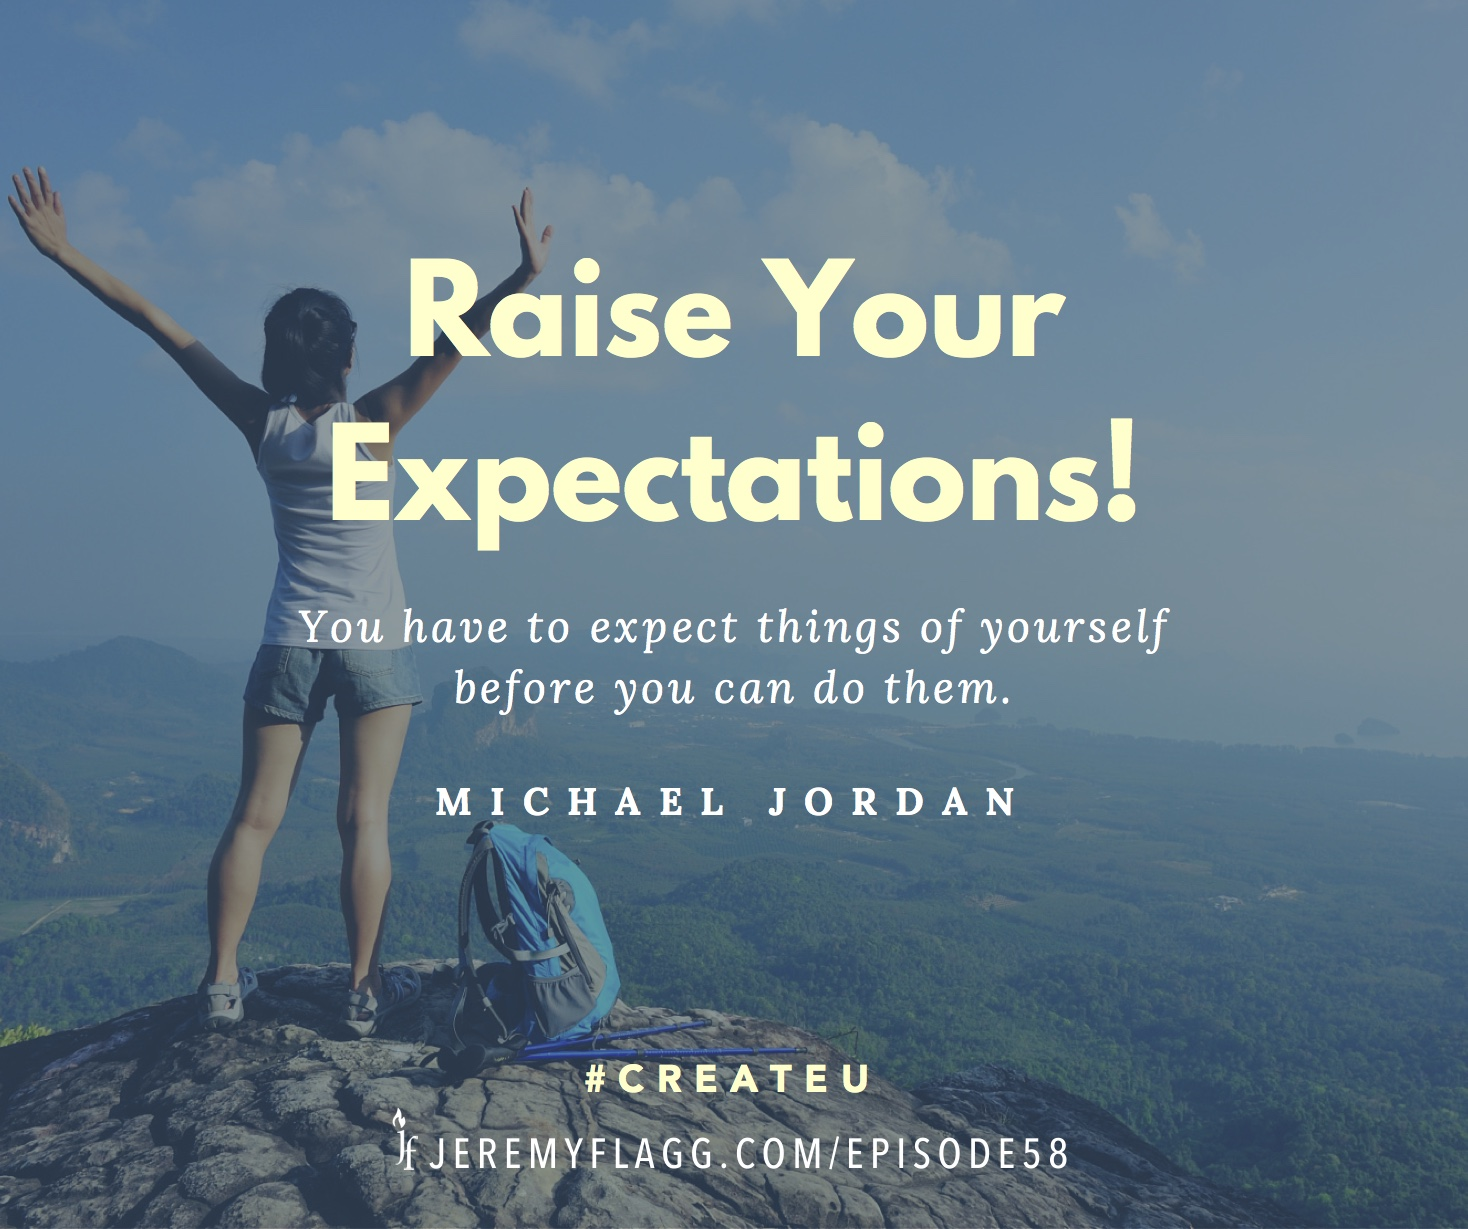 Raise-Your-Expectations-Michael-Jordan-quote-FB